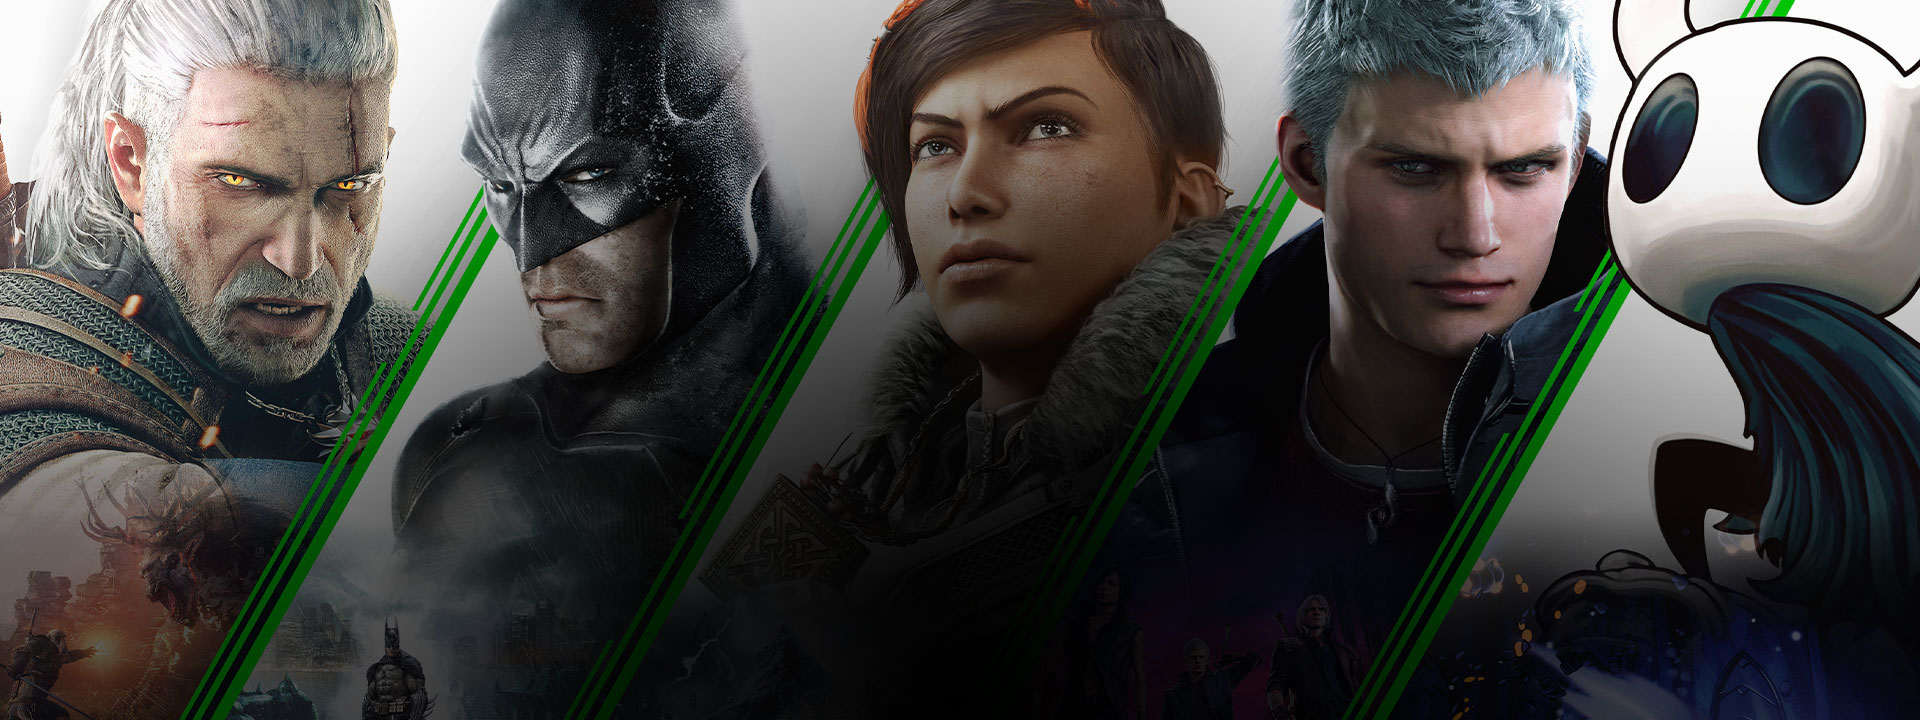 Colagem de jogos disponíveis no Xbox, incluindo The Witcher 3: Wild Hunt, Batman (Arkham Series), Gears 5, Devil May Cry 5 e Hollow Knight.